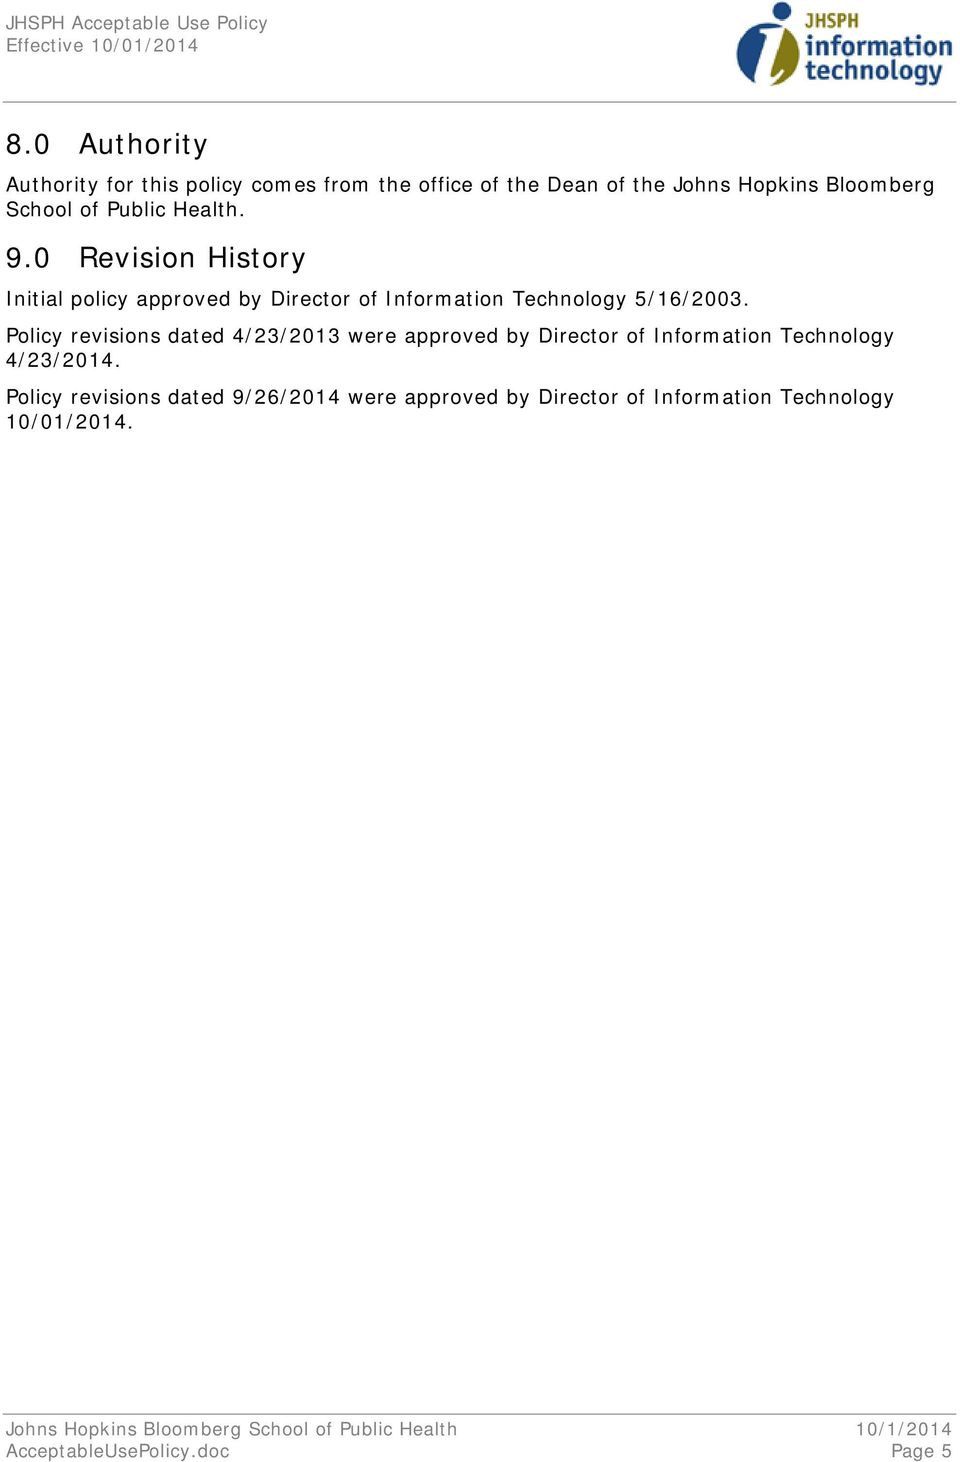 Policy revisions dated 4/23/2013 were approved by Director of Information Technology 4/23/2014.